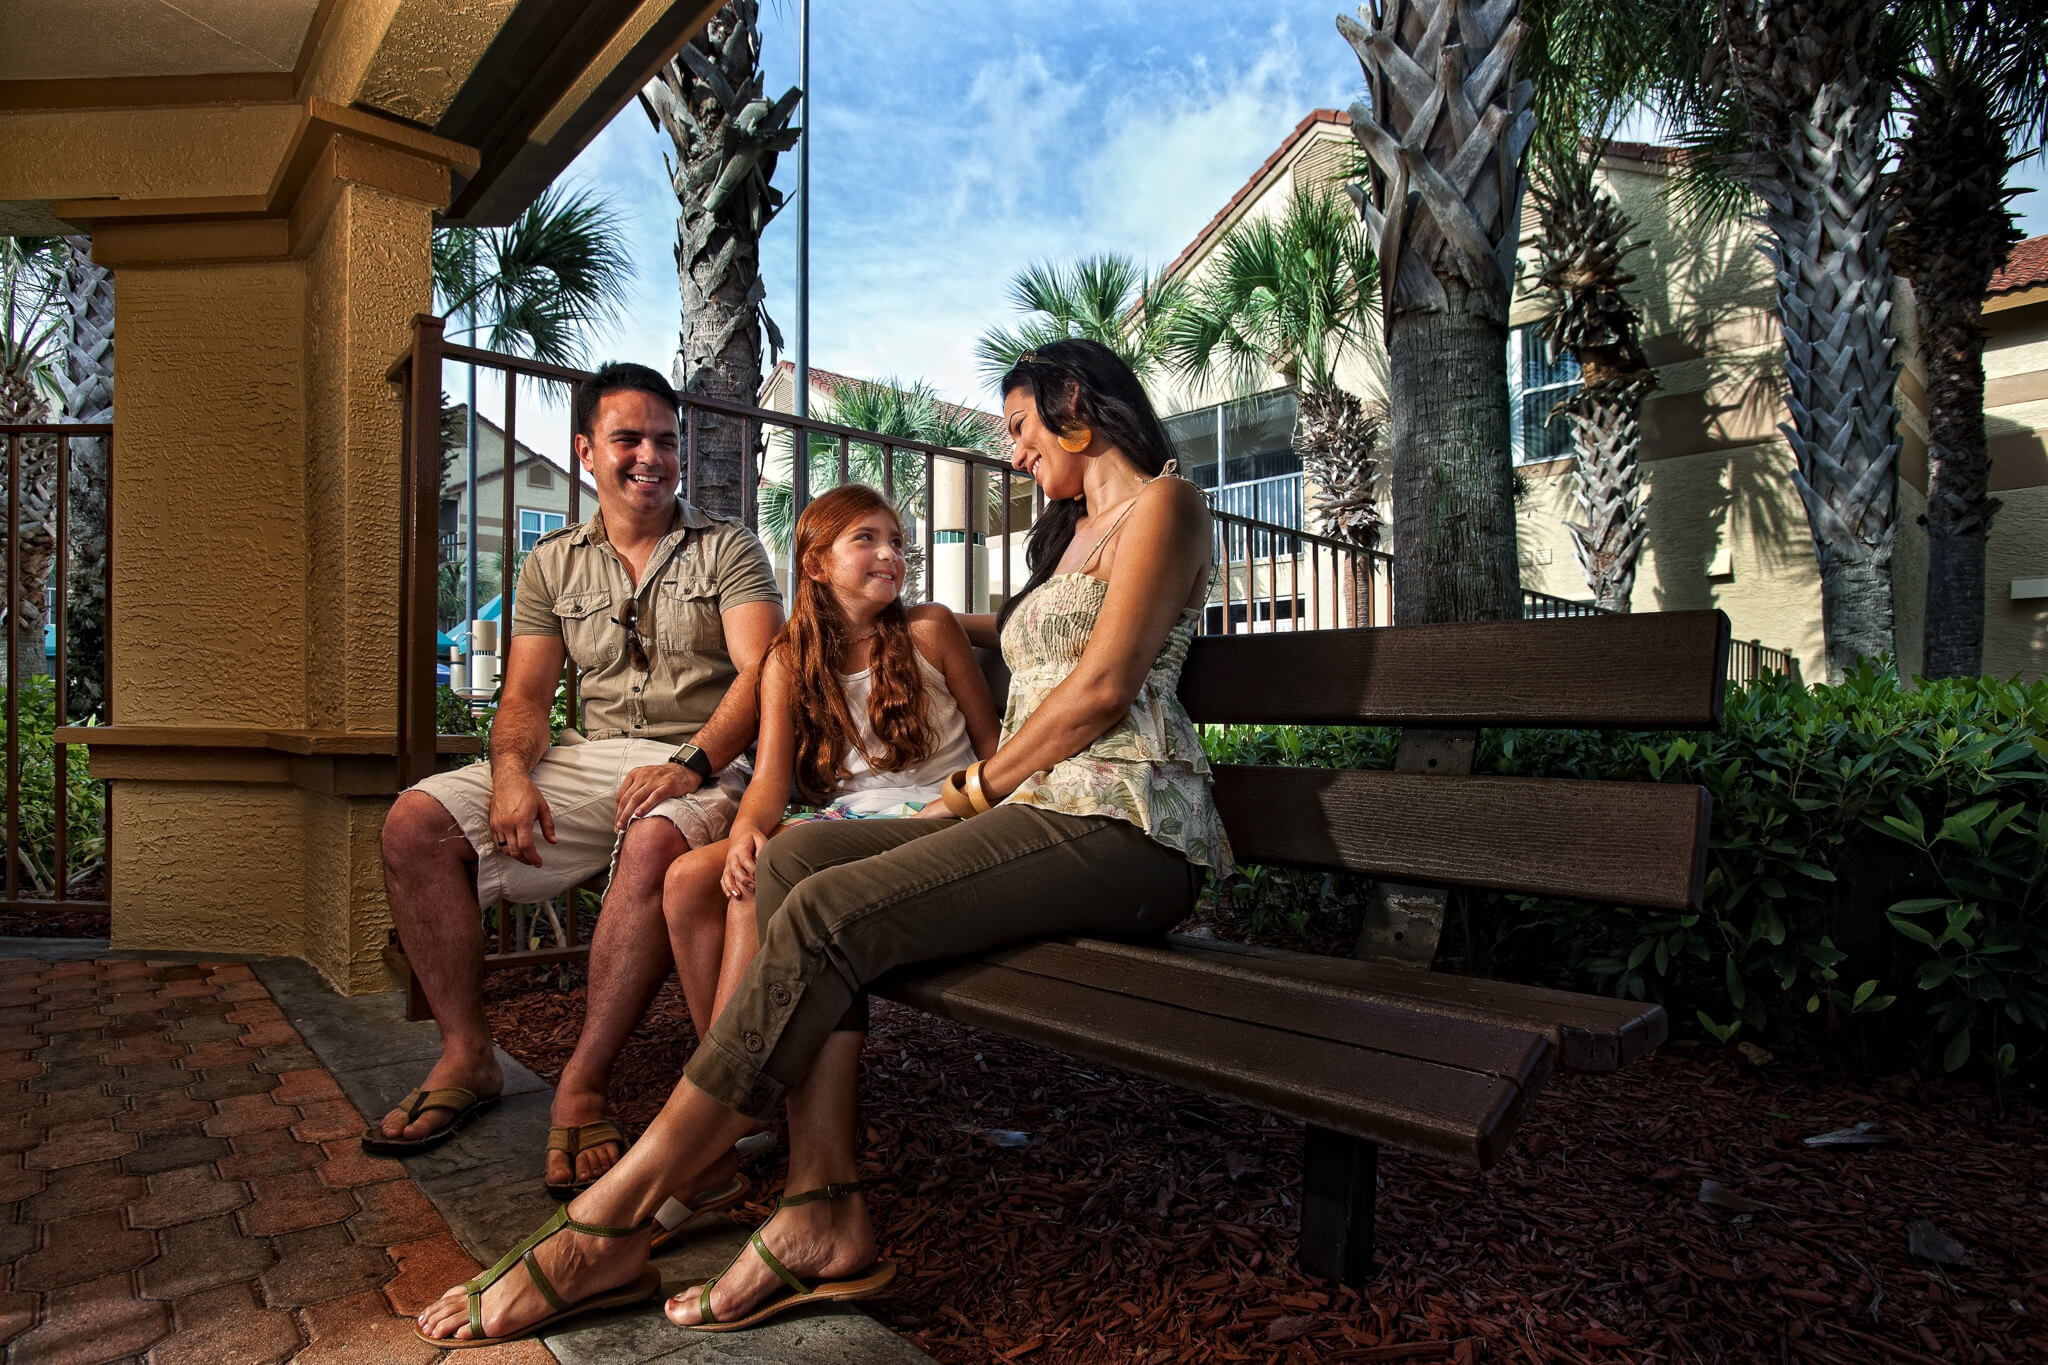 Family chilling out near pool area | Westgate Blue Tree Resort | Westgate Resorts Orlando